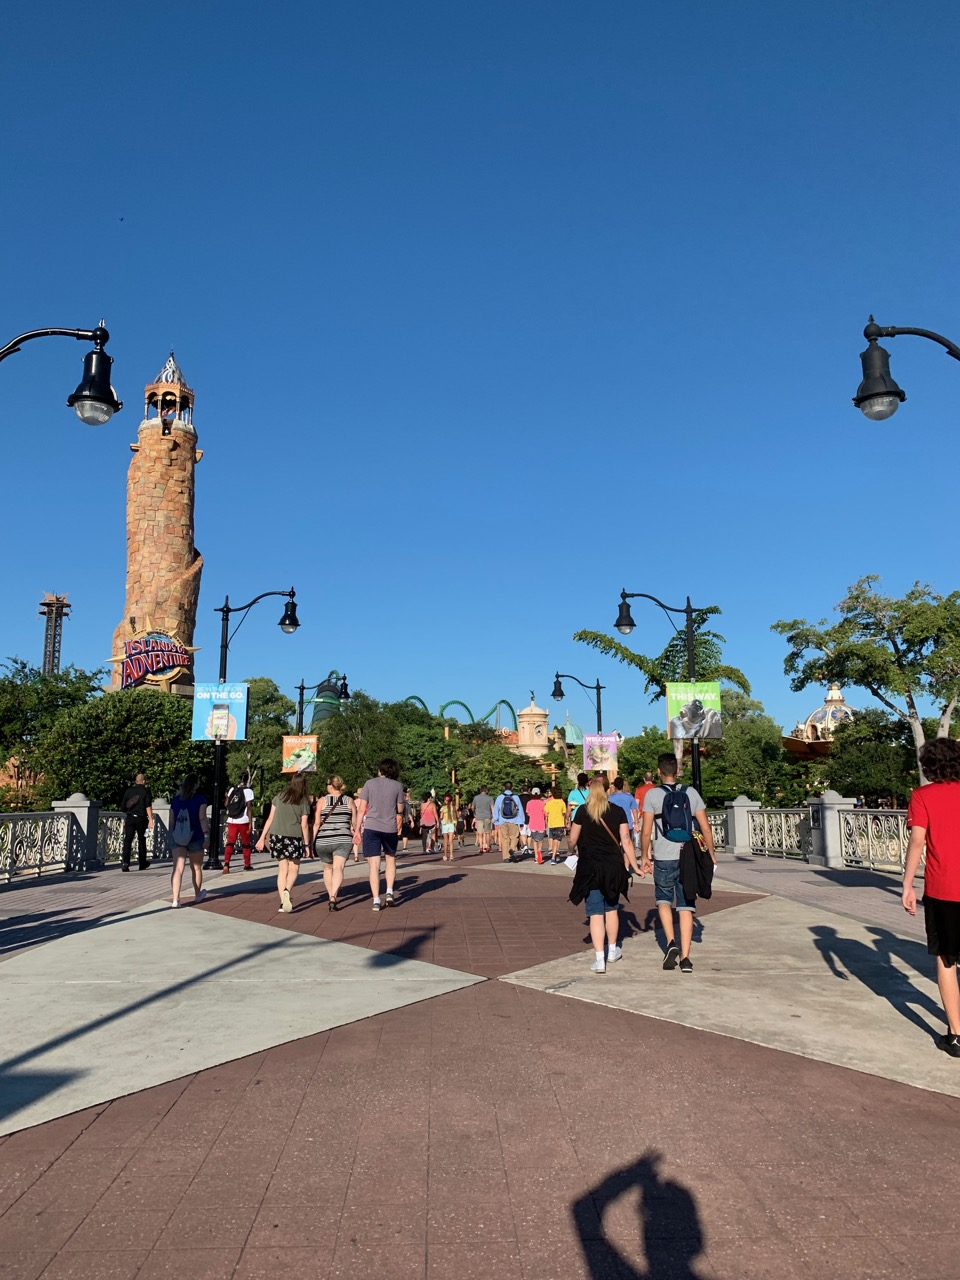 universal orlando early park admission 08 islands of adventure.jpeg